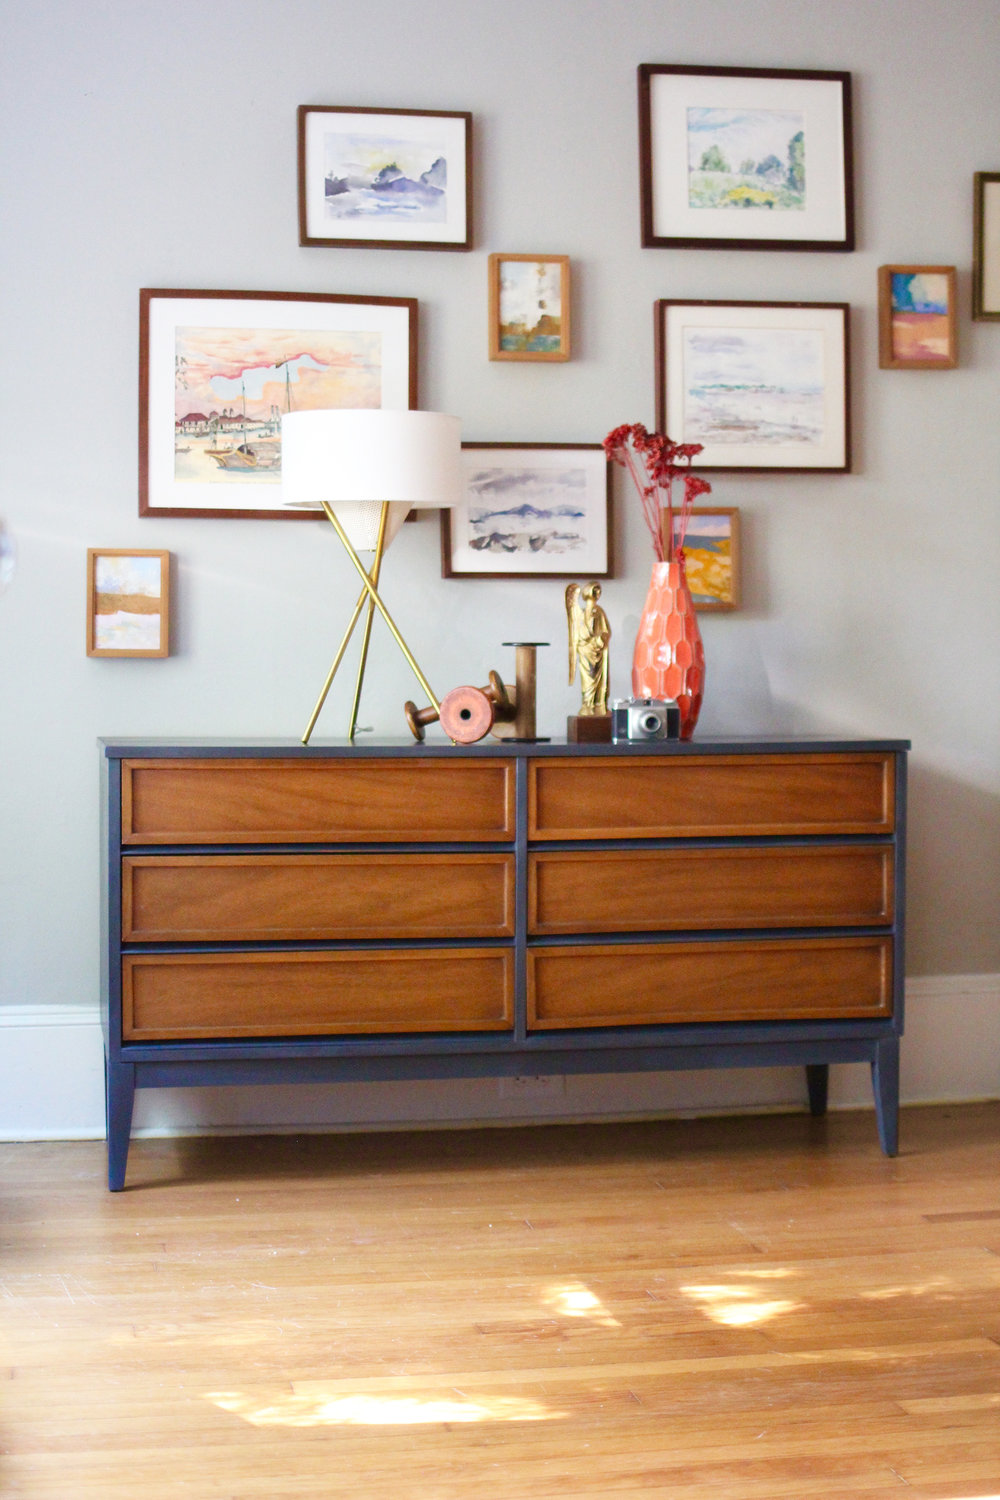 jo-torrijos-a-simpler-design-atlanta-painted-furniture-annie-sloan-graphite-mid-century-dresser-wood-and-gray-paint-1.jpg